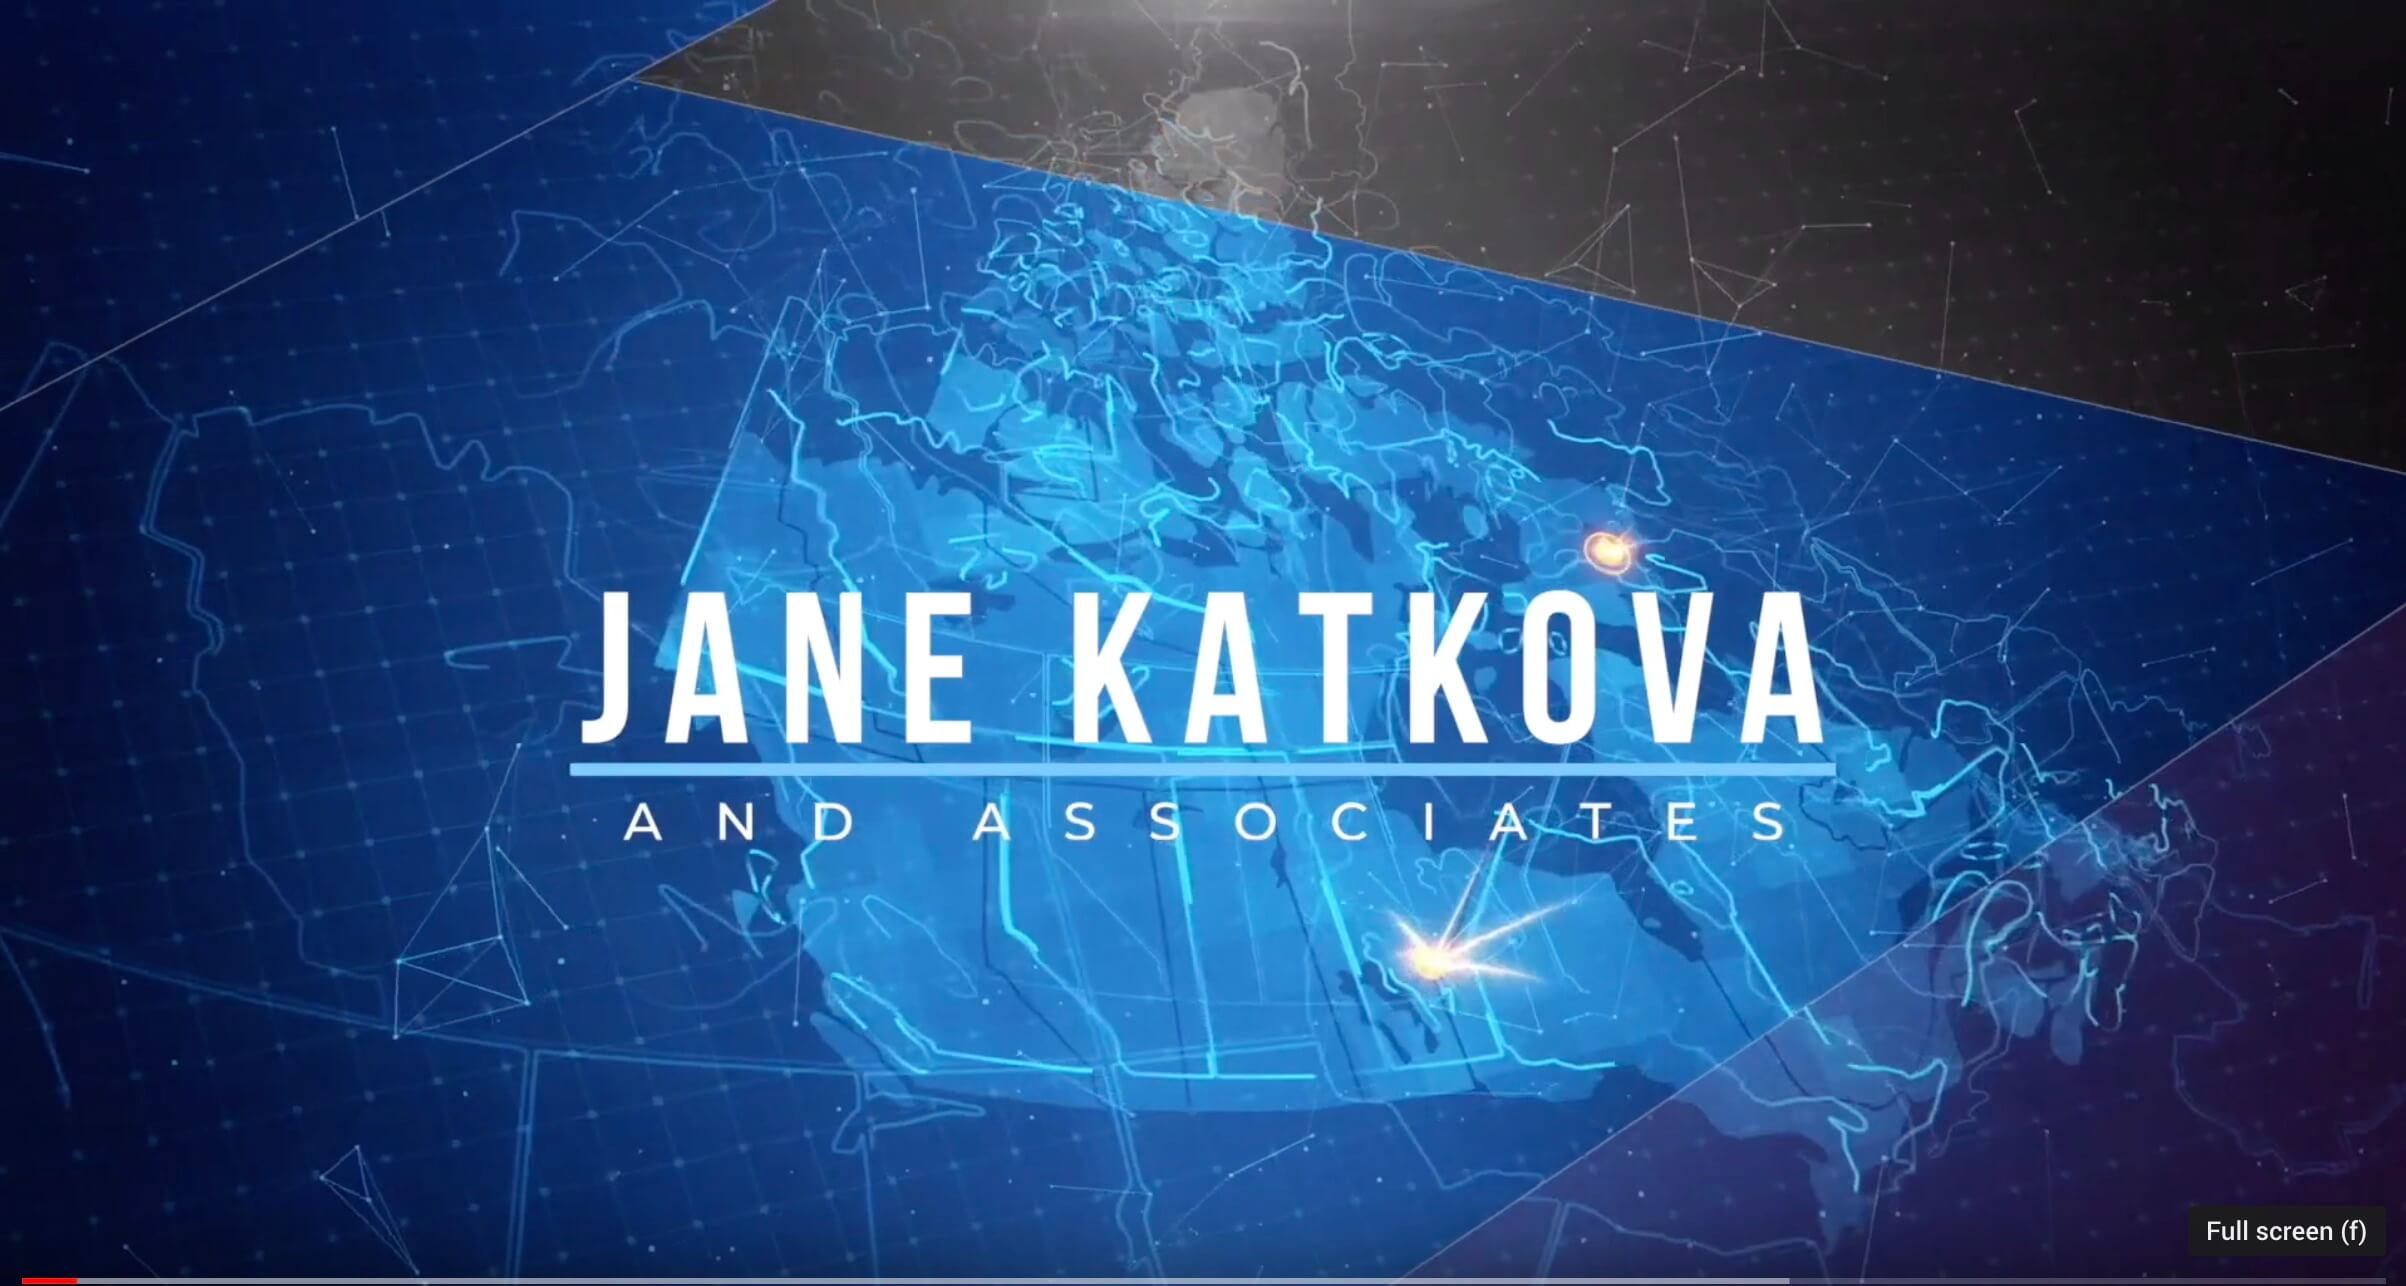 Jane Katkova And Associates